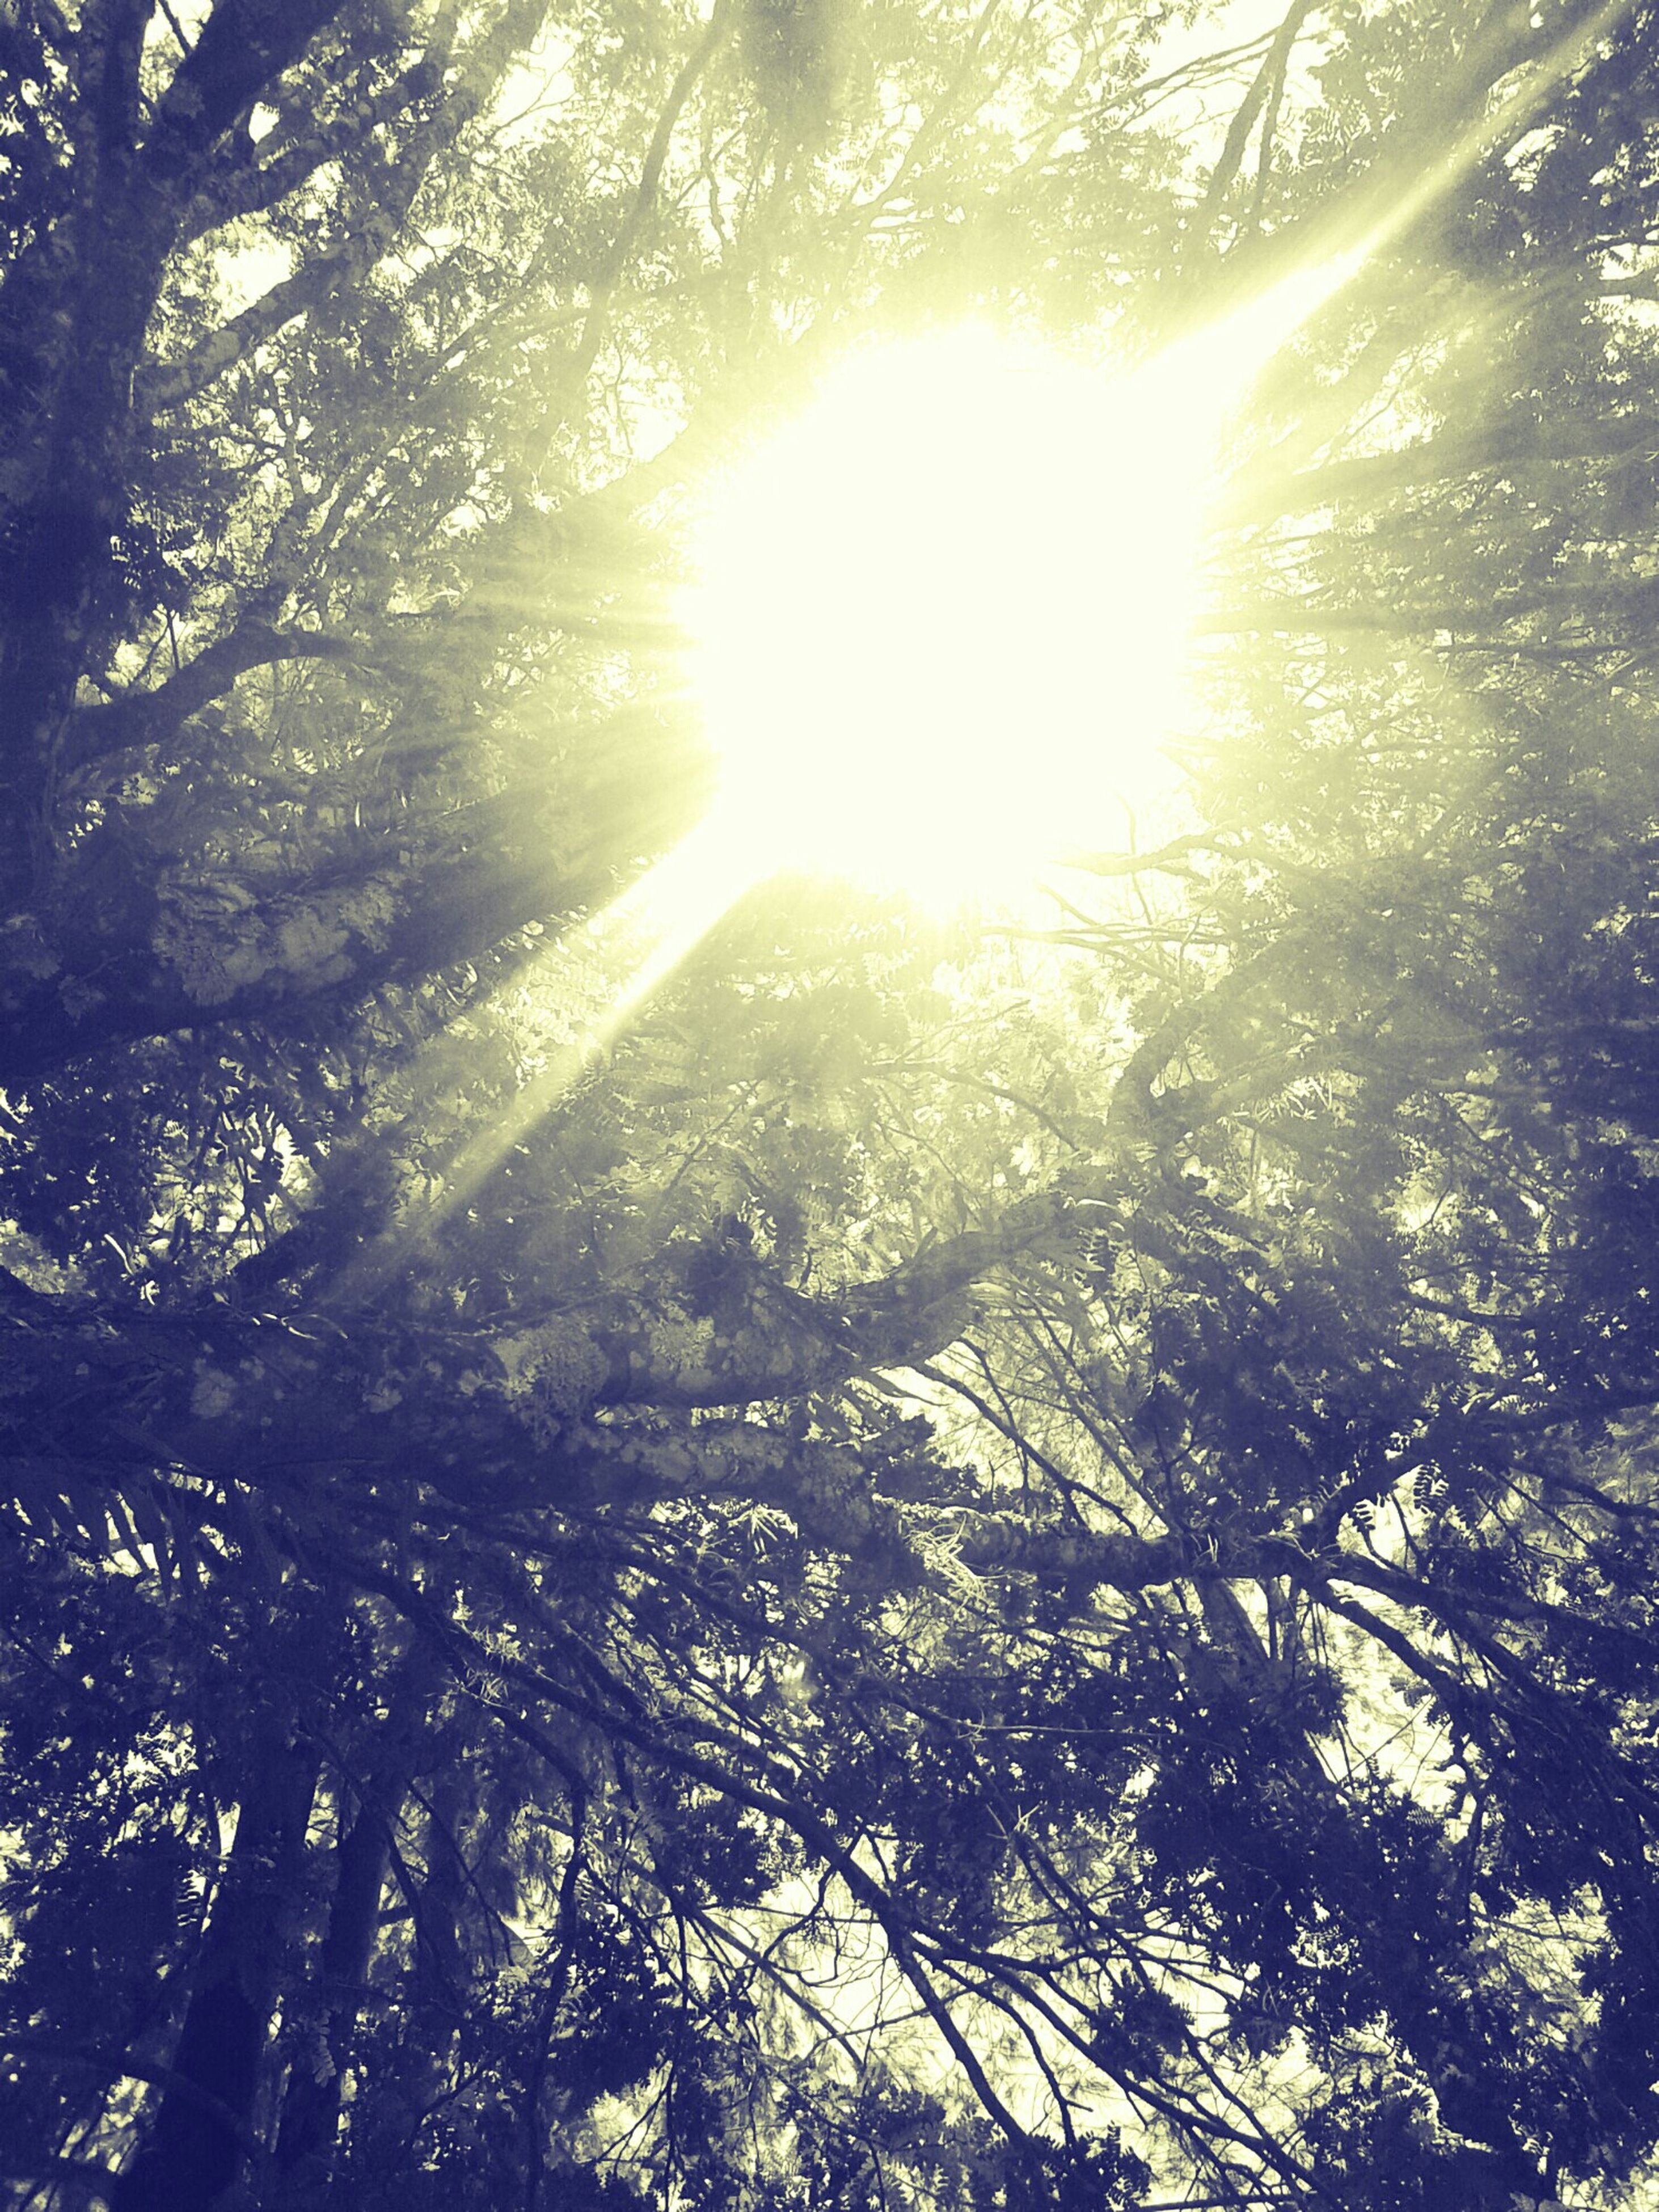 sun, tree, sunbeam, sunlight, lens flare, low angle view, tranquility, beauty in nature, nature, bright, growth, branch, sunny, scenics, tranquil scene, sky, back lit, day, forest, streaming